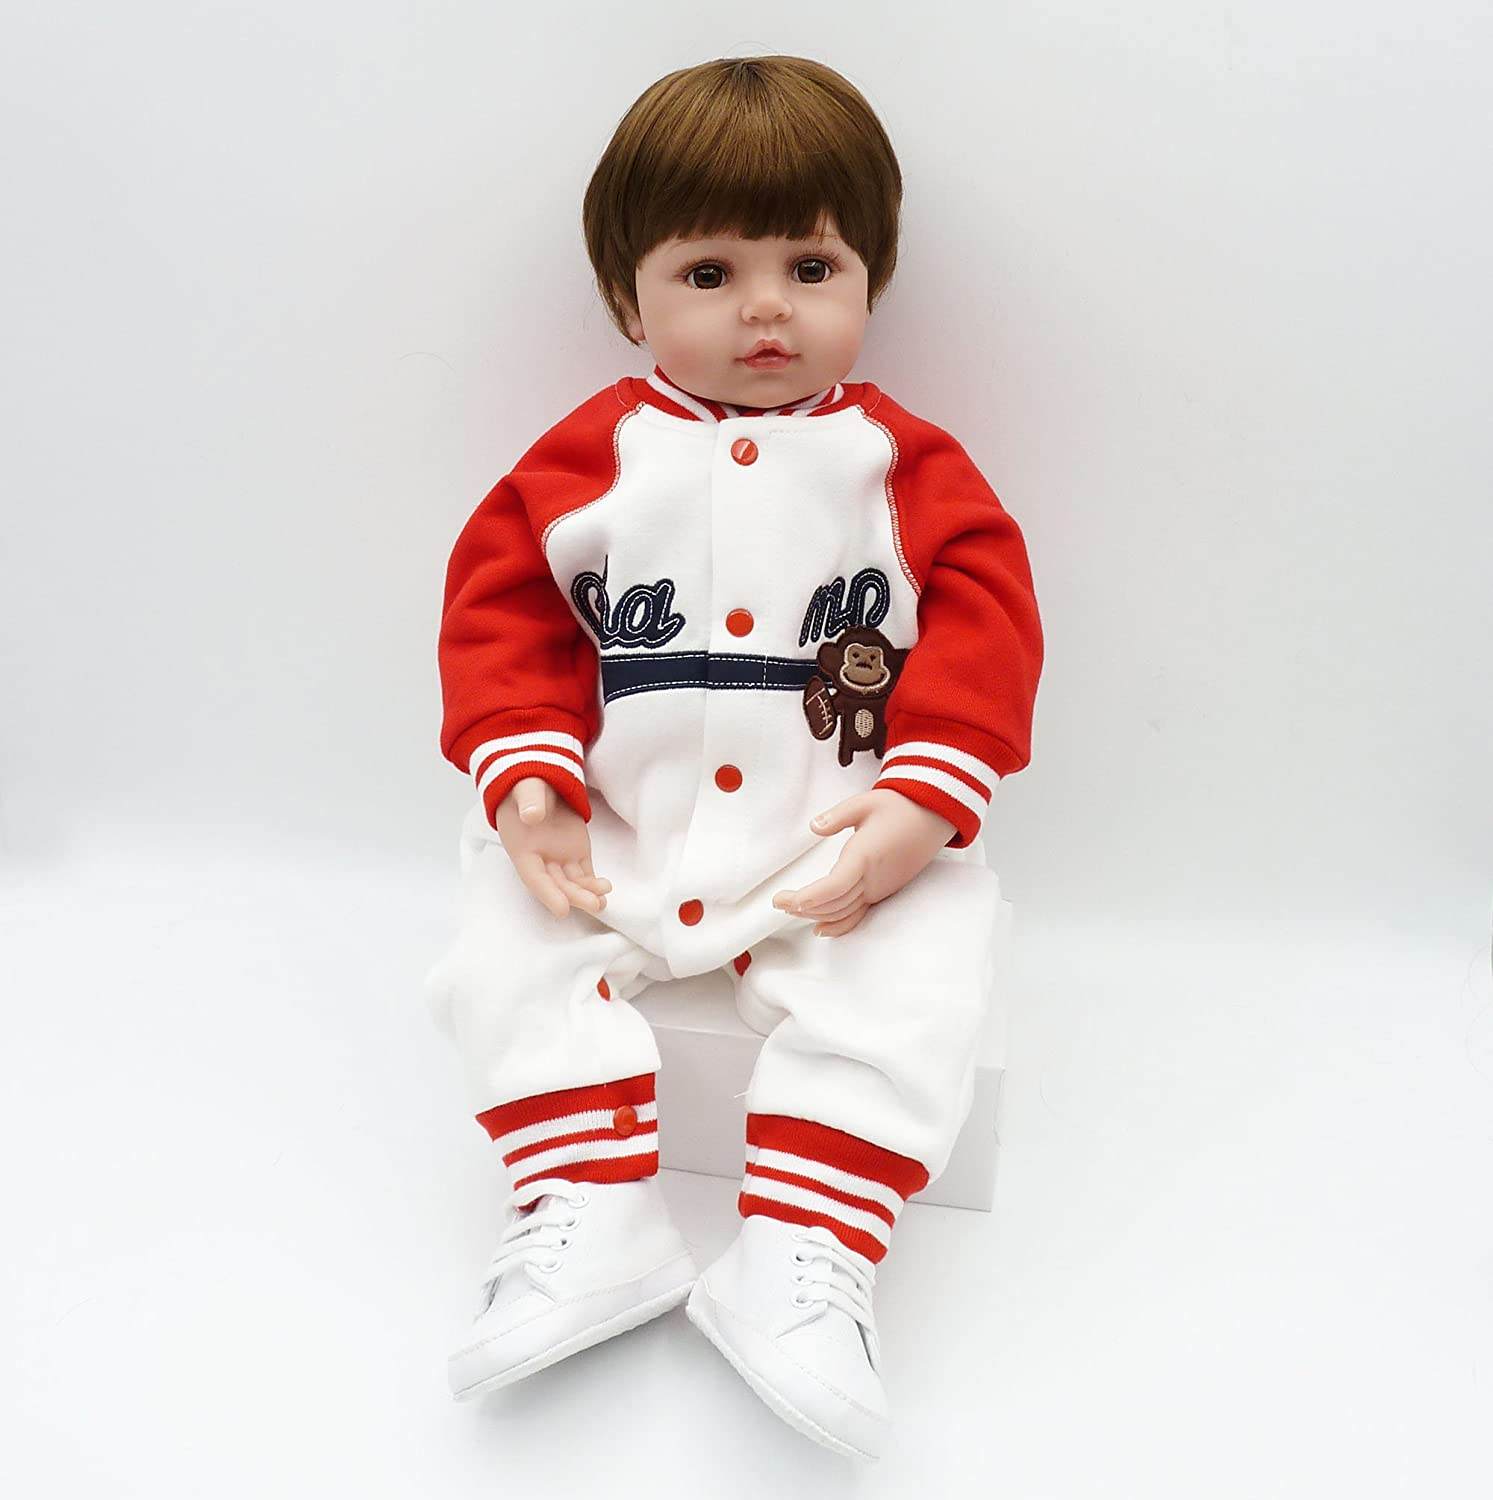 Pursue Baby Cute Floppy Body Lifelike Toddler Prince Doll Chinese